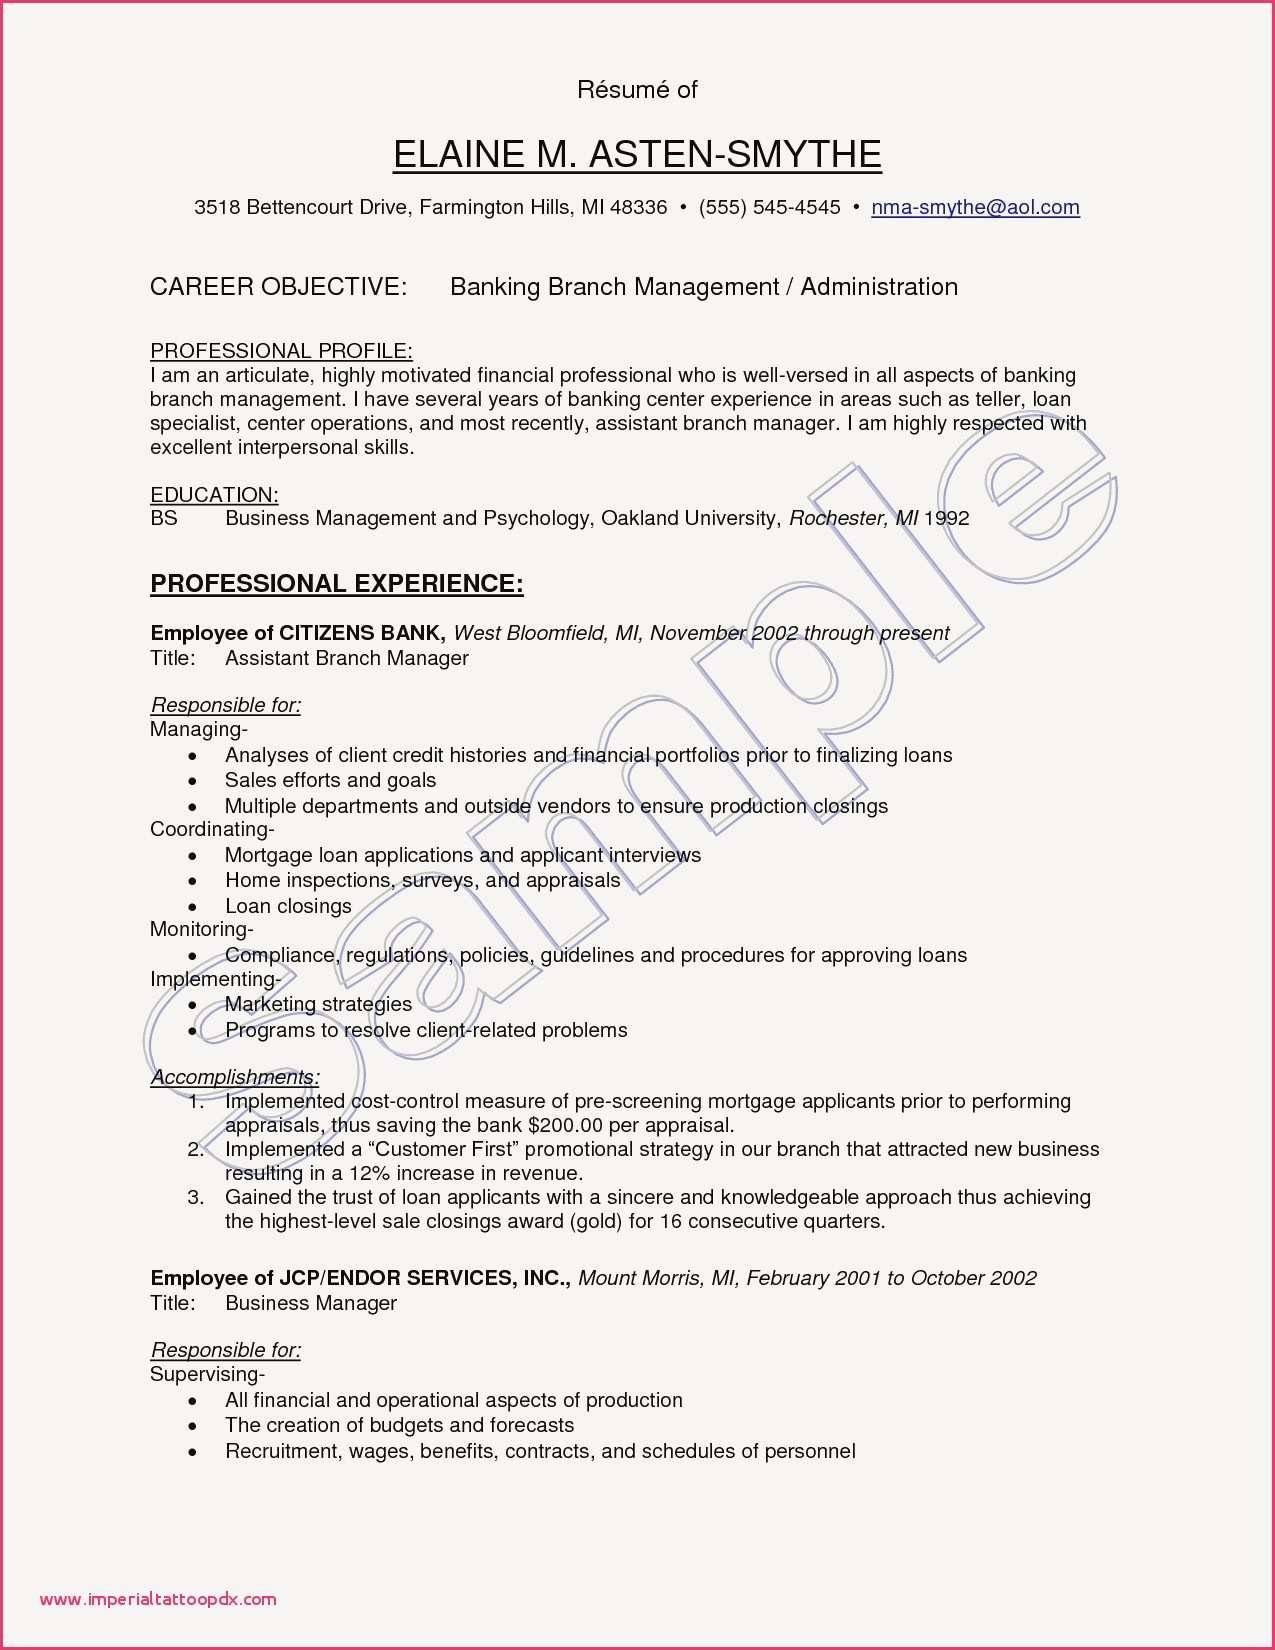 Restaurant Management Resume Templates